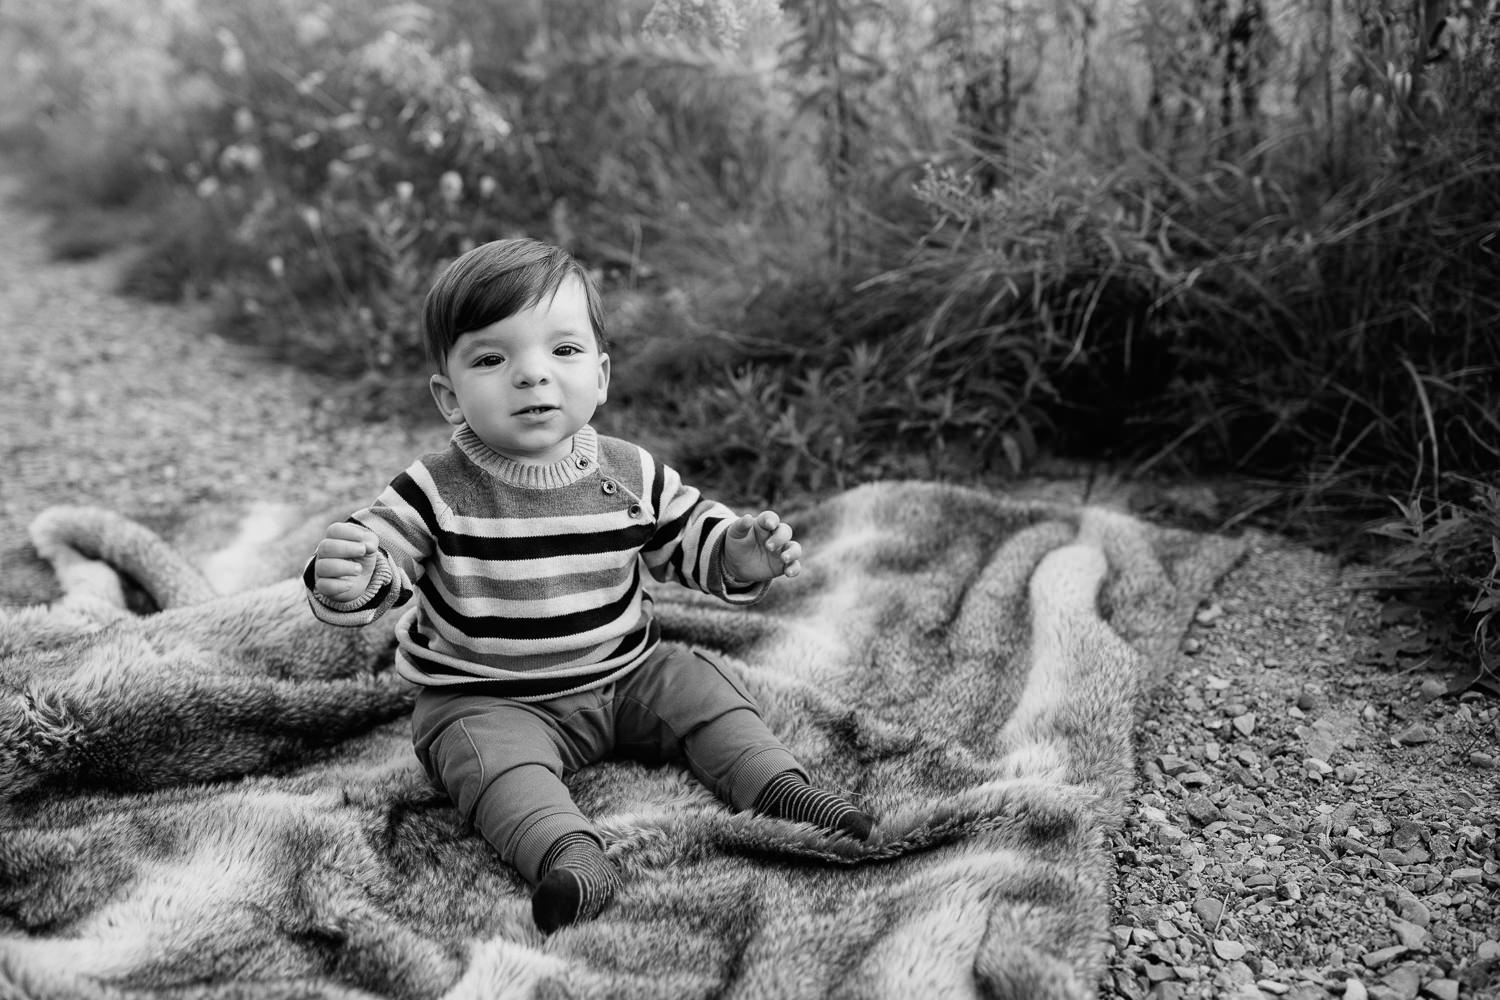 1 year old boy with dark hair and eyes wearing striped sweater sitting on blanket in outdoor path looking at camera - York Region Golden Hour Photography